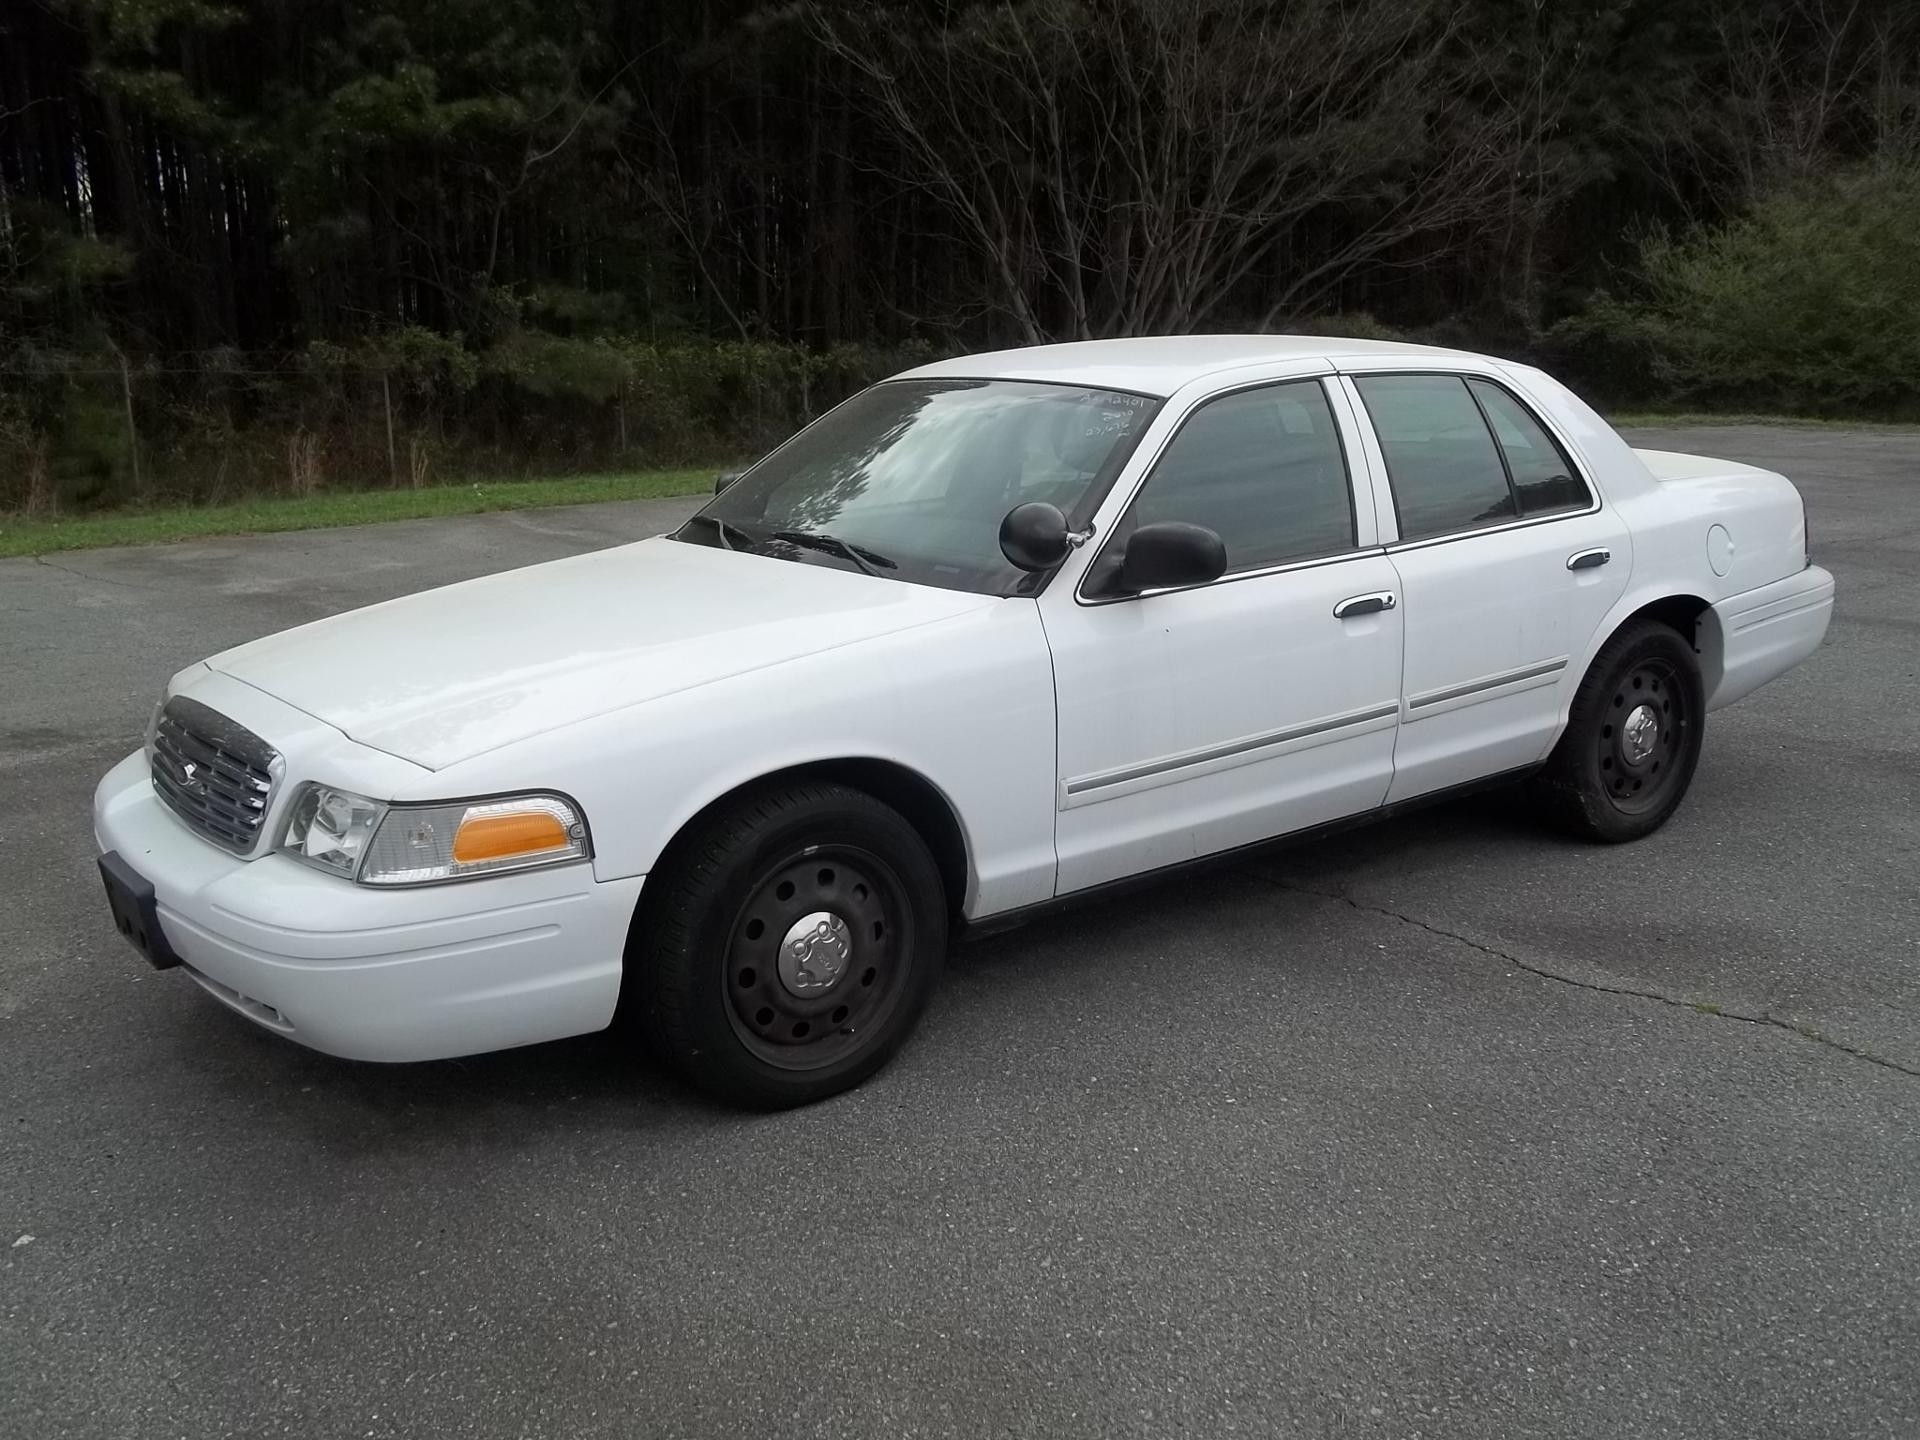 used police cars for sale unique unadilla white 2010 ford police interceptor used car for sale